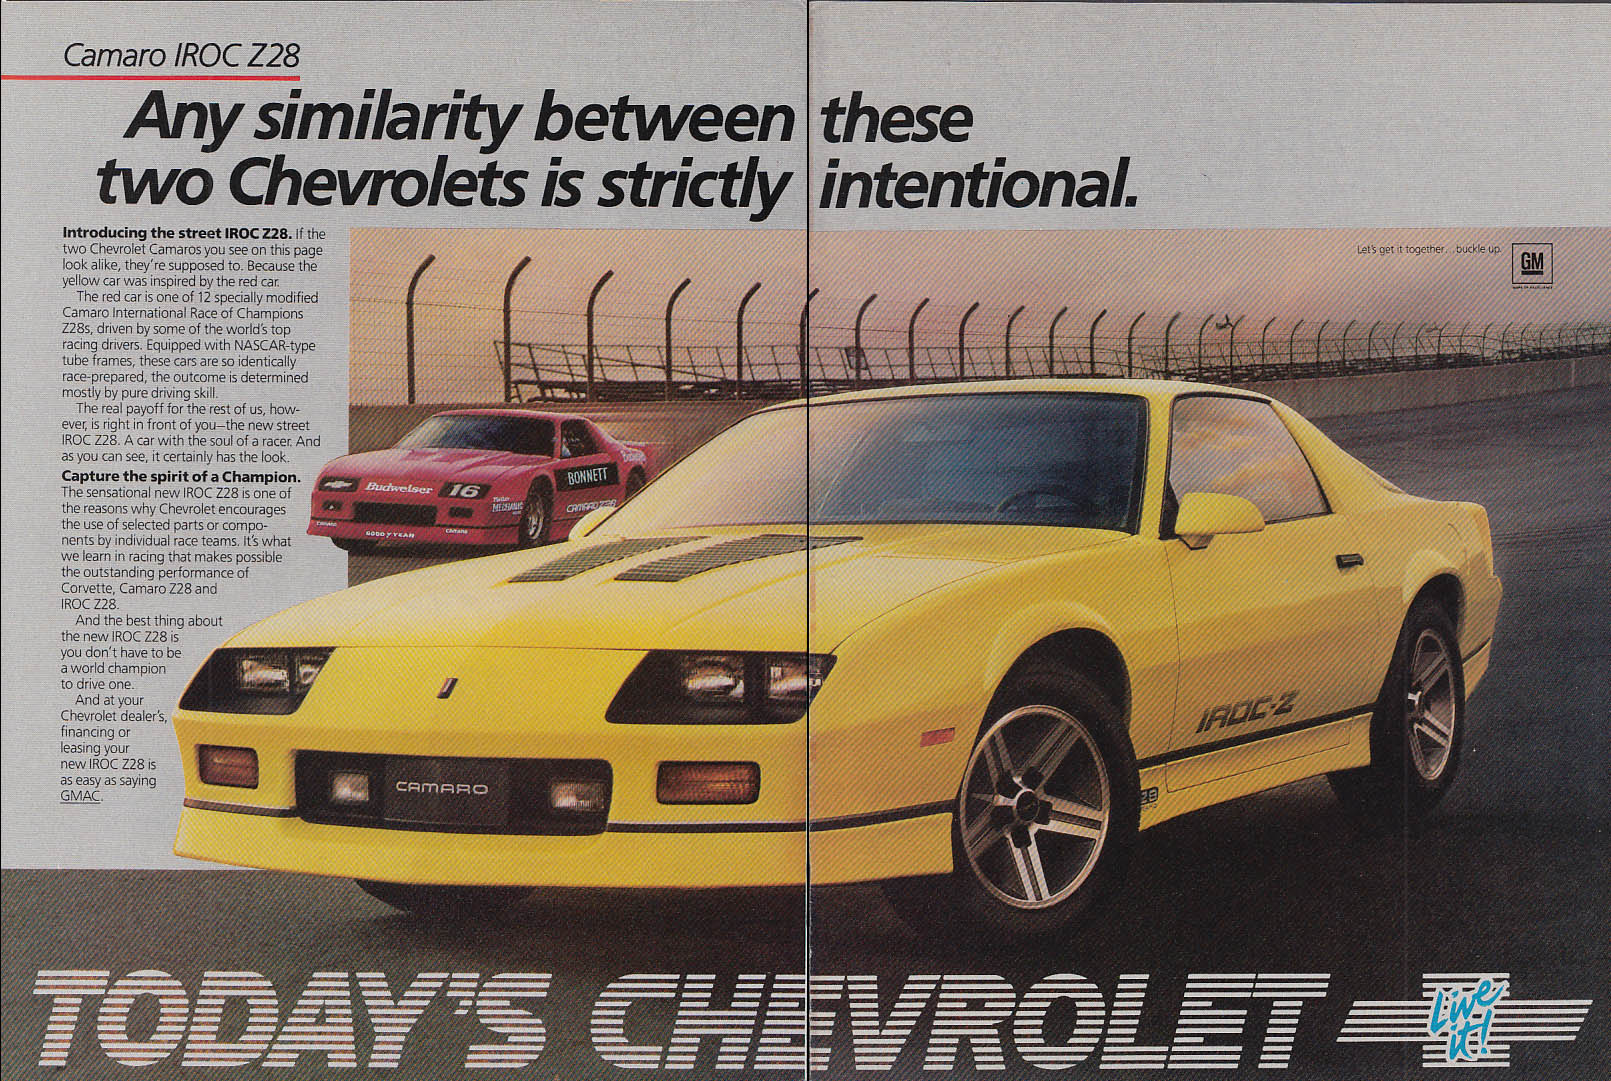 Any similarity between these two is intentional Chevrolet Camaro Z28 ad 1985 HR